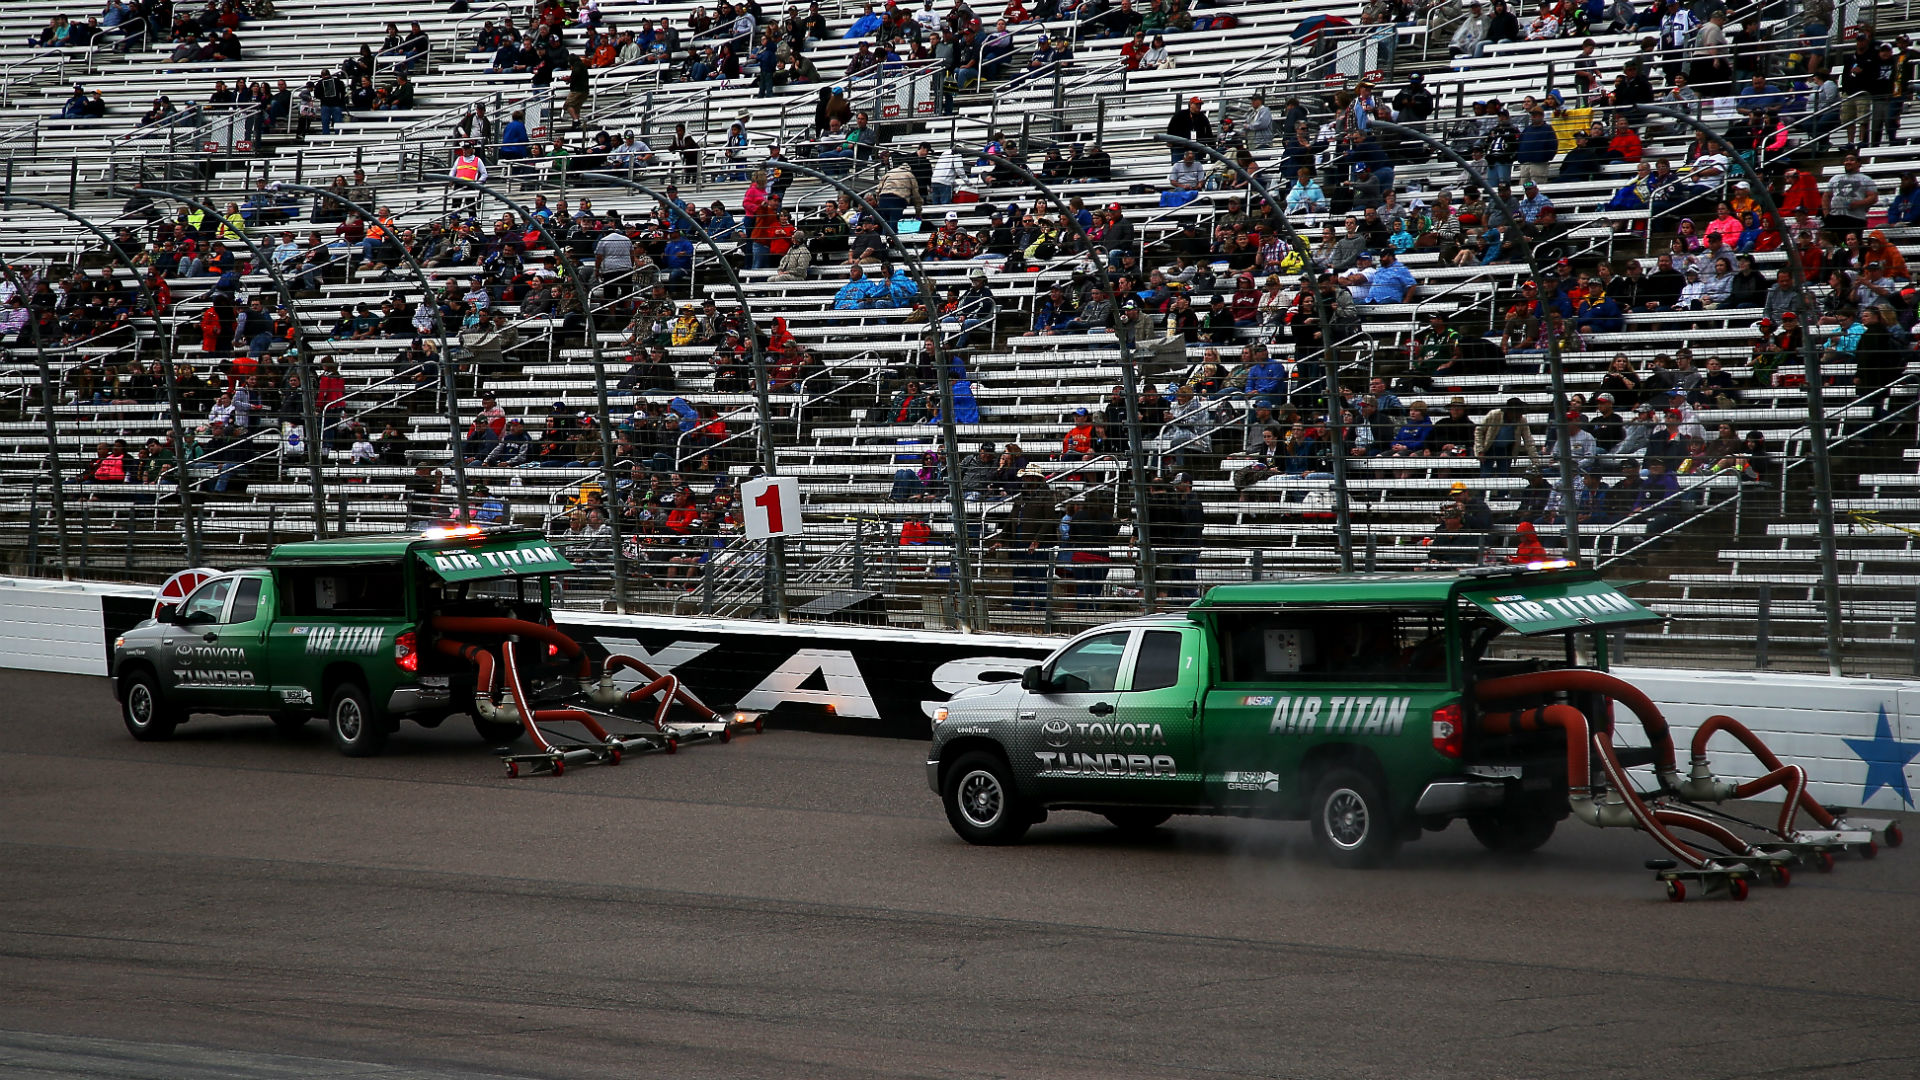 Nascar race at texas underwent lengthy rain delay prior to for Nascar tickets for texas motor speedway